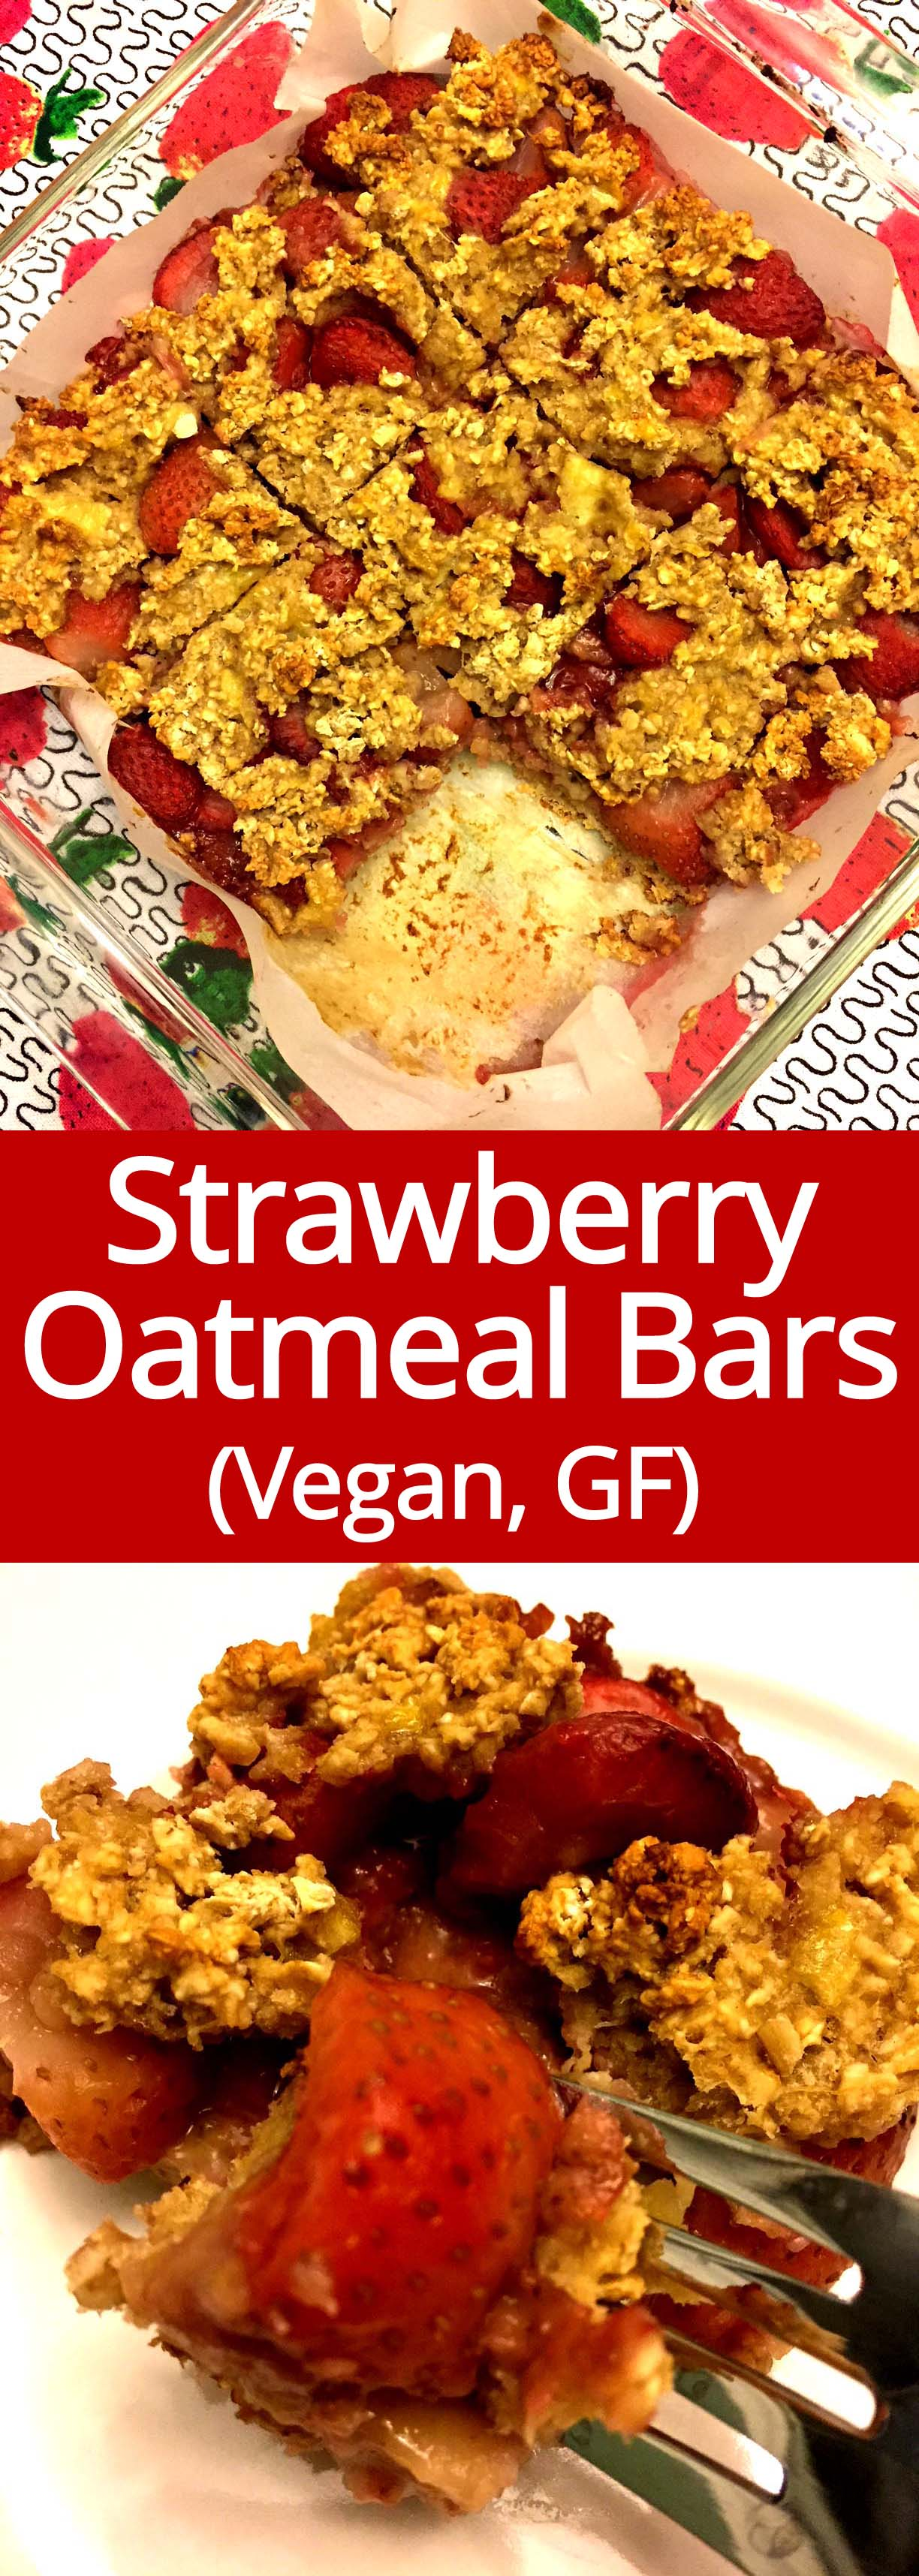 These strawberry banana oatmeal breakfast bars are amazing! So healthy and delicious! This is my perfect healthy breakfast and snack!